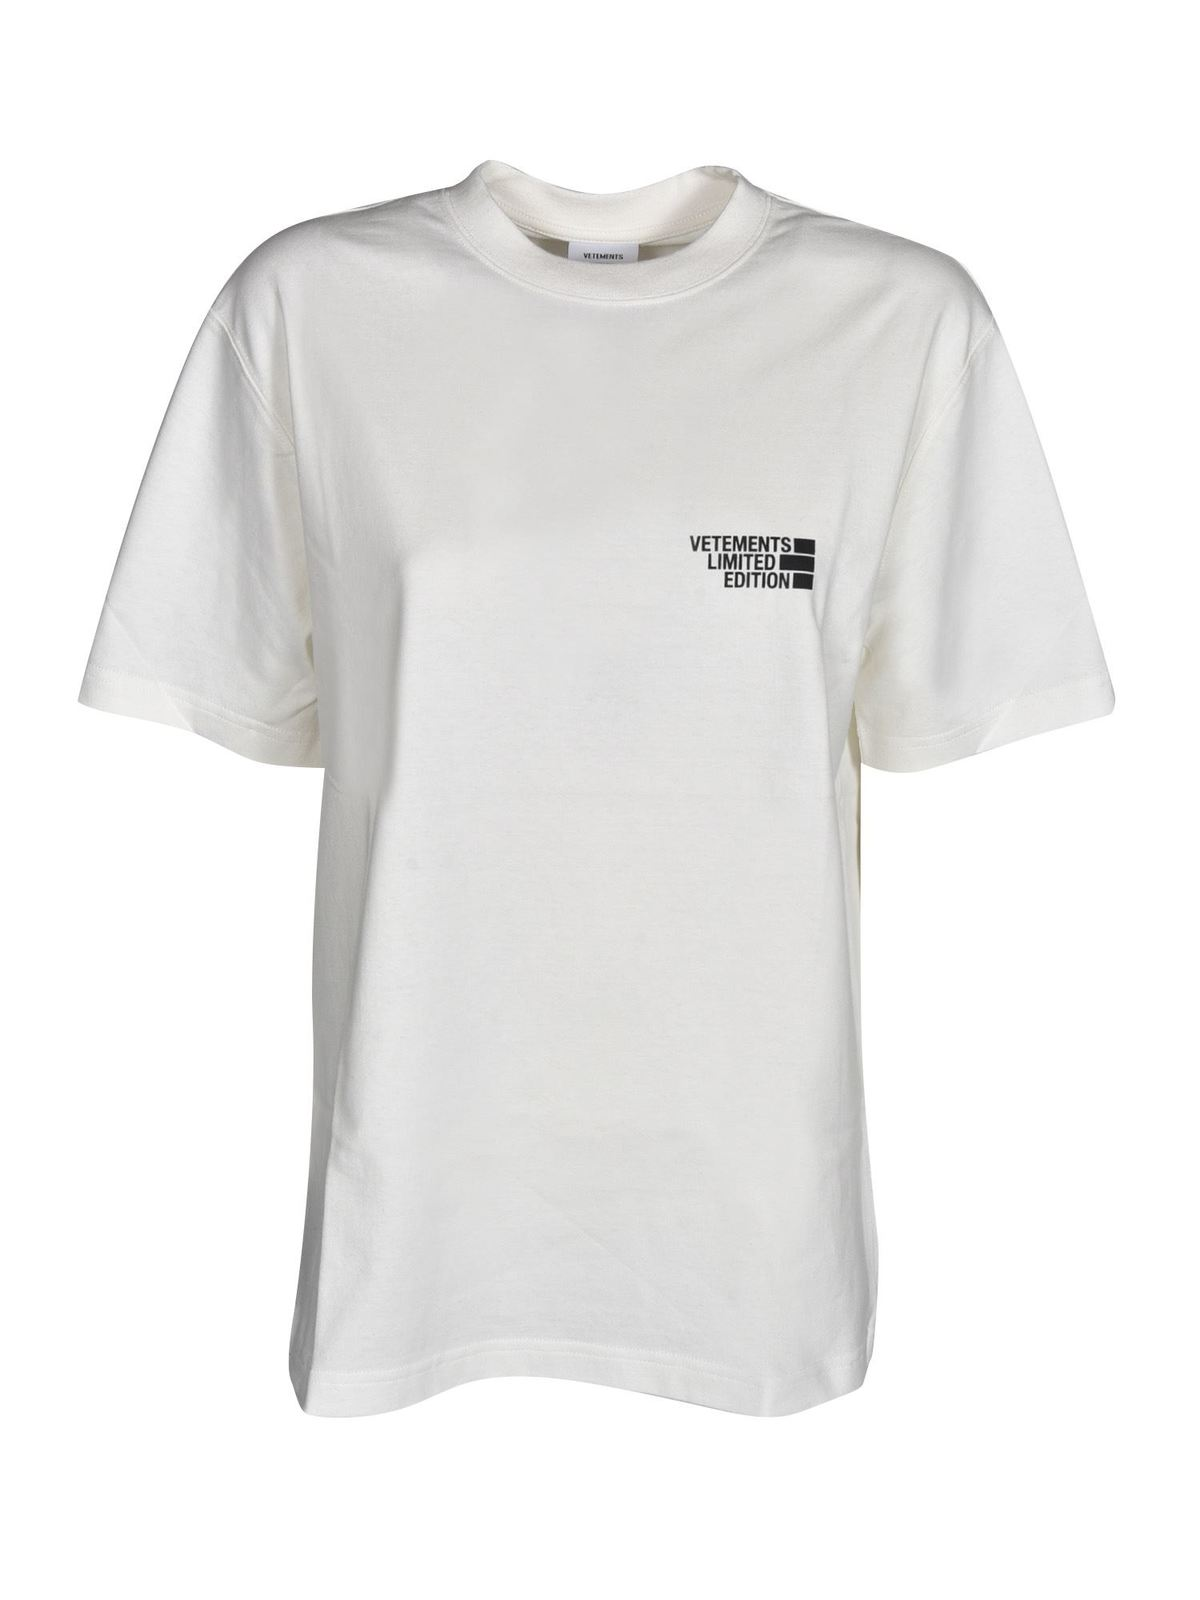 Vetements LOGO PRINT T-SHIRT IN WHITE